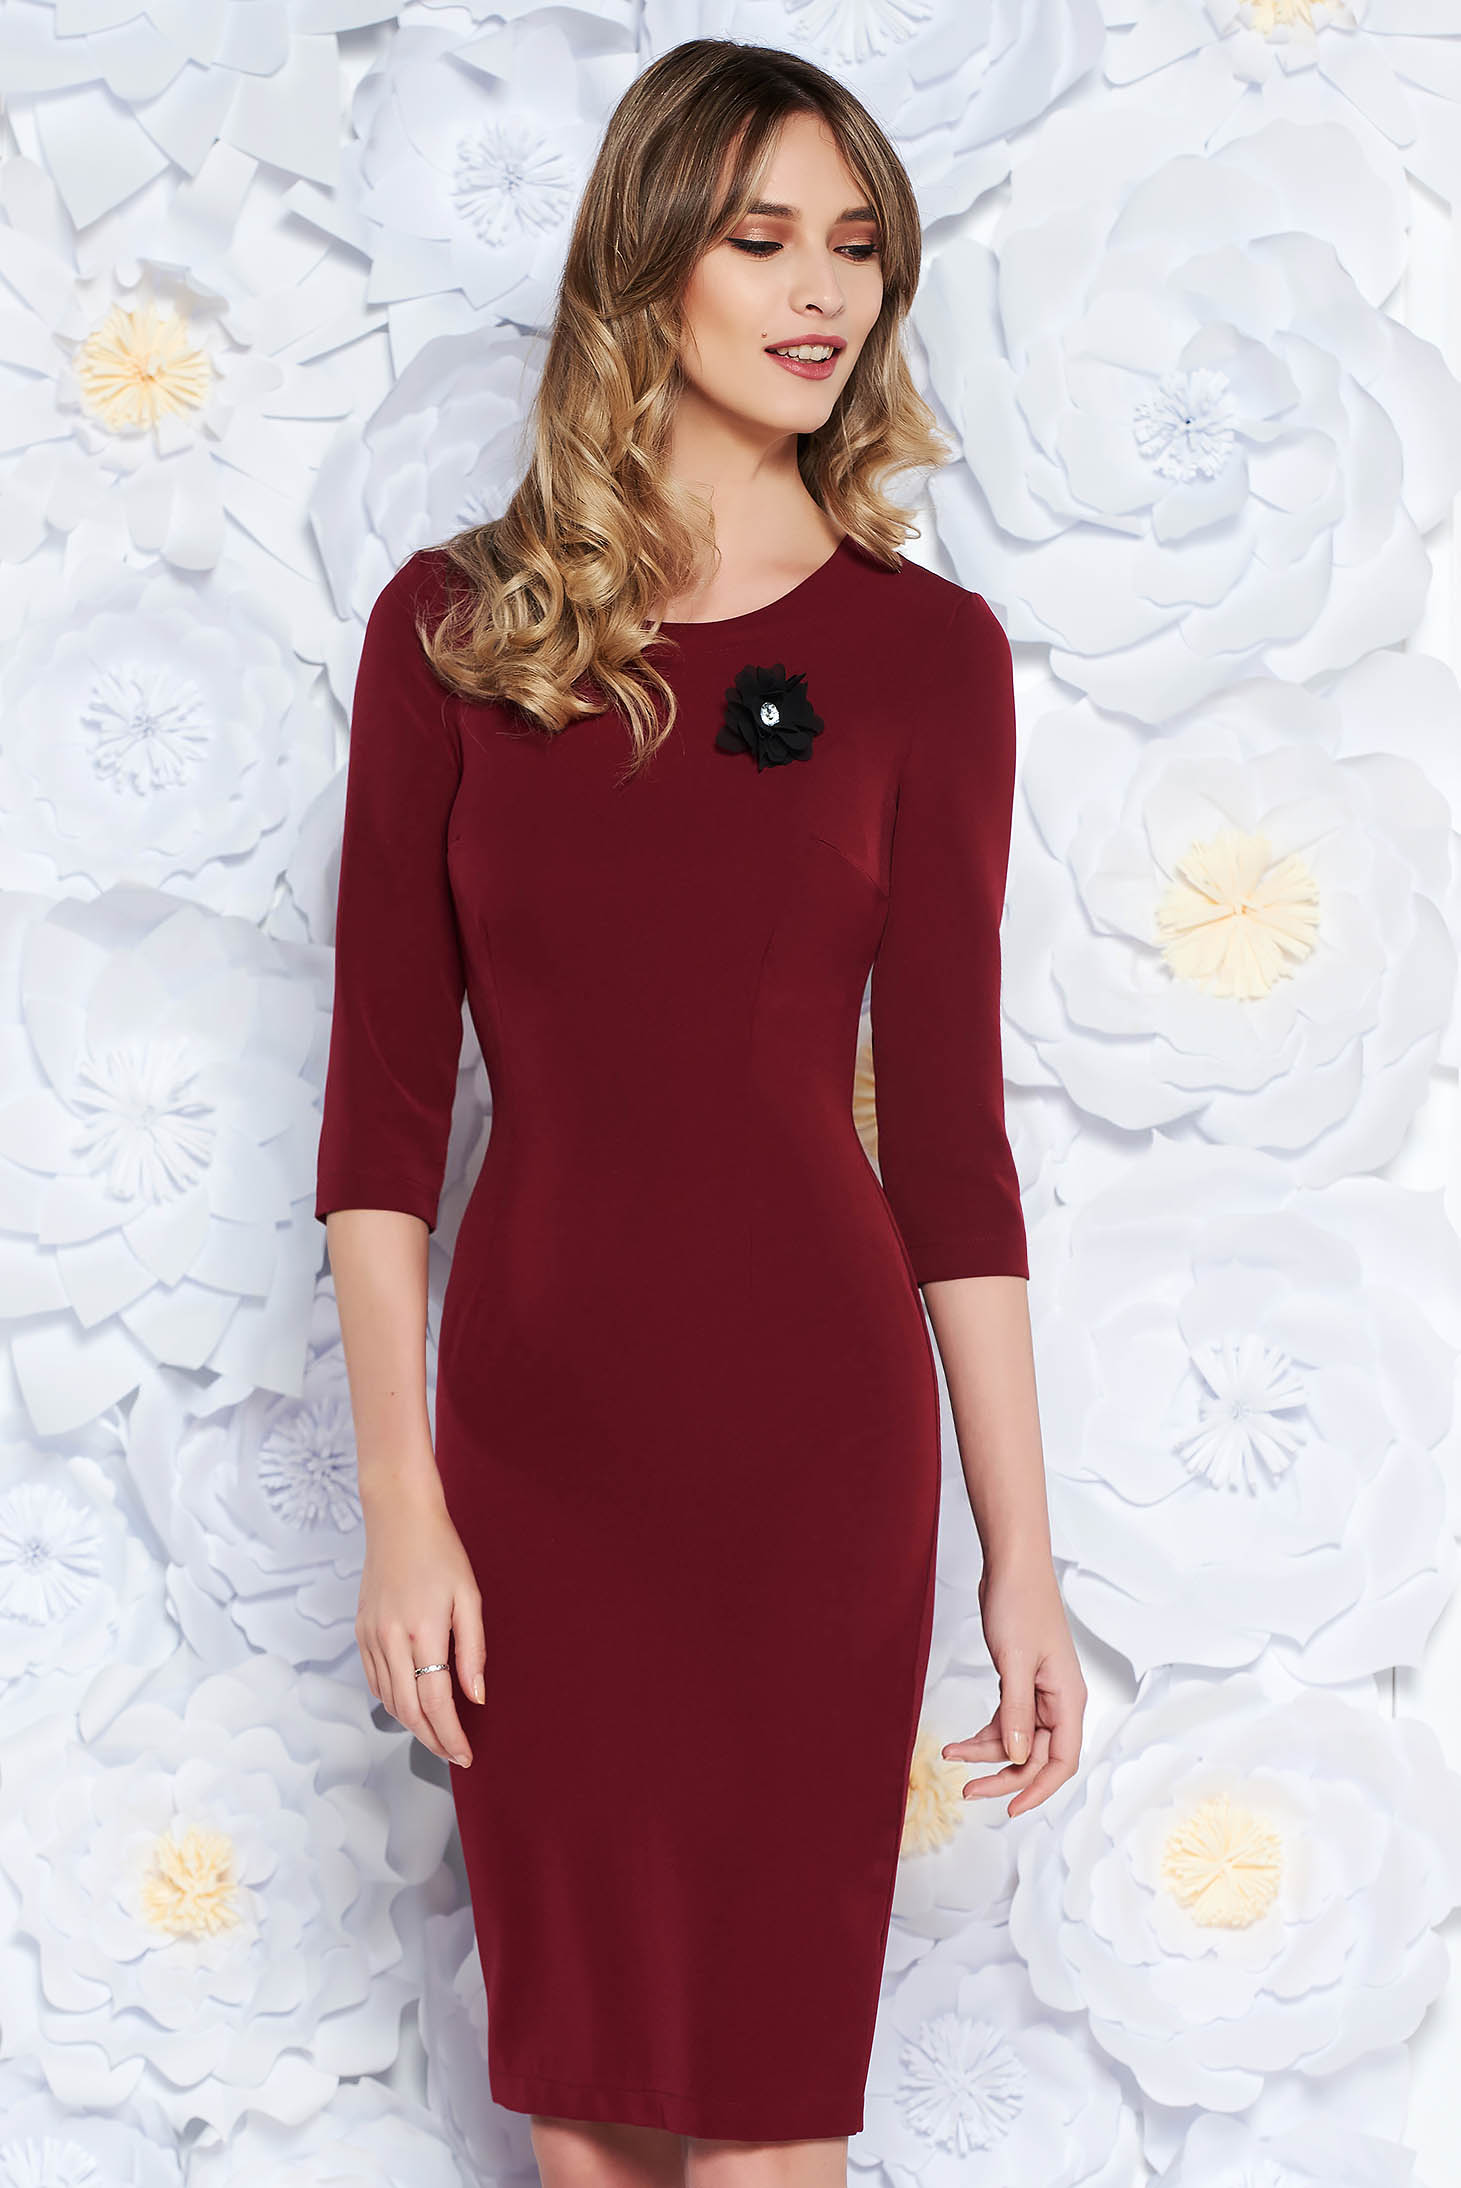 StarShinerS burgundy dress elegant midi pencil slightly elastic fabric accessorized with breastpin